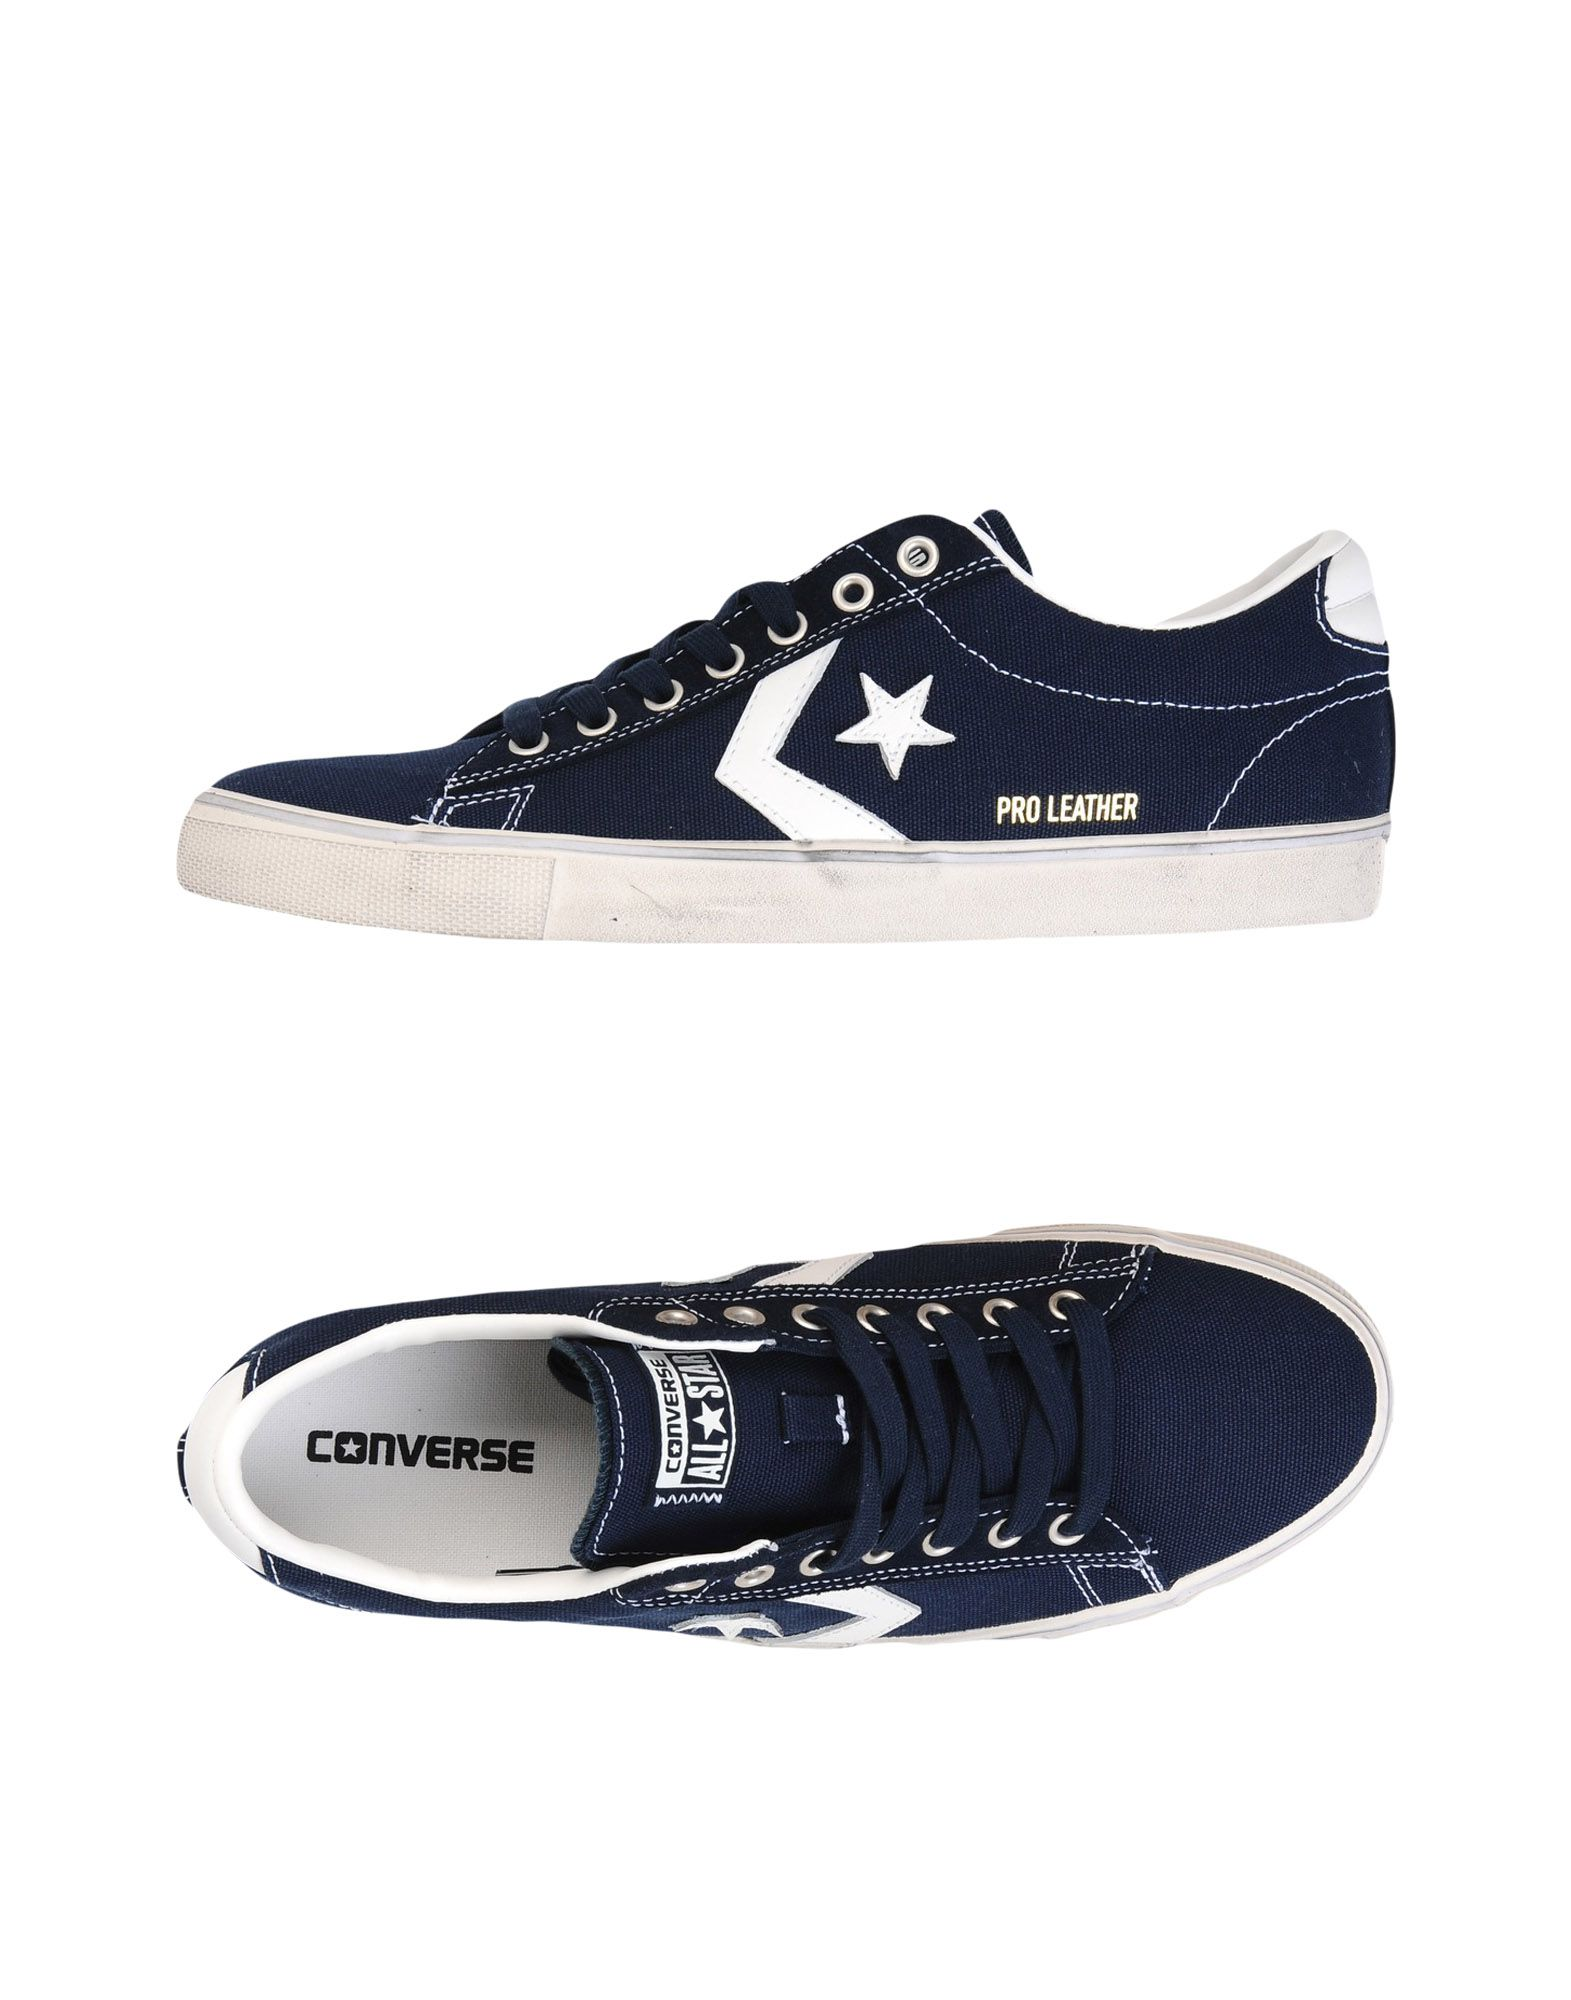 Sneakers Converse All Star Pro Leather Vulc Ox Canvas Distressed - Uomo - 11461436OL